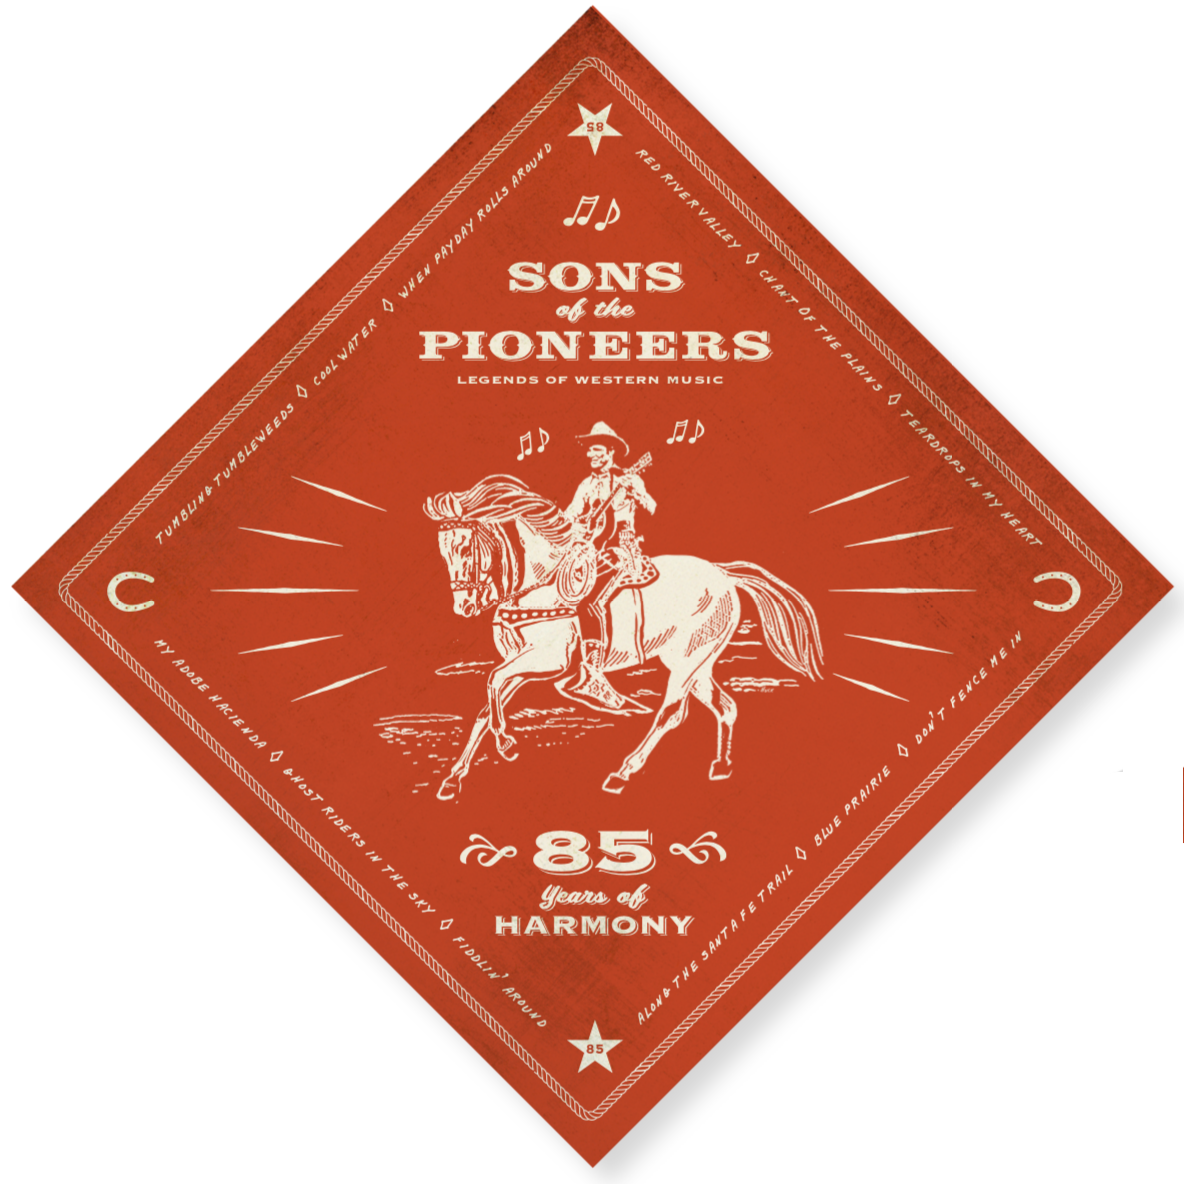 Coming (very) soon: the new Sons of the Pioneers CD! -